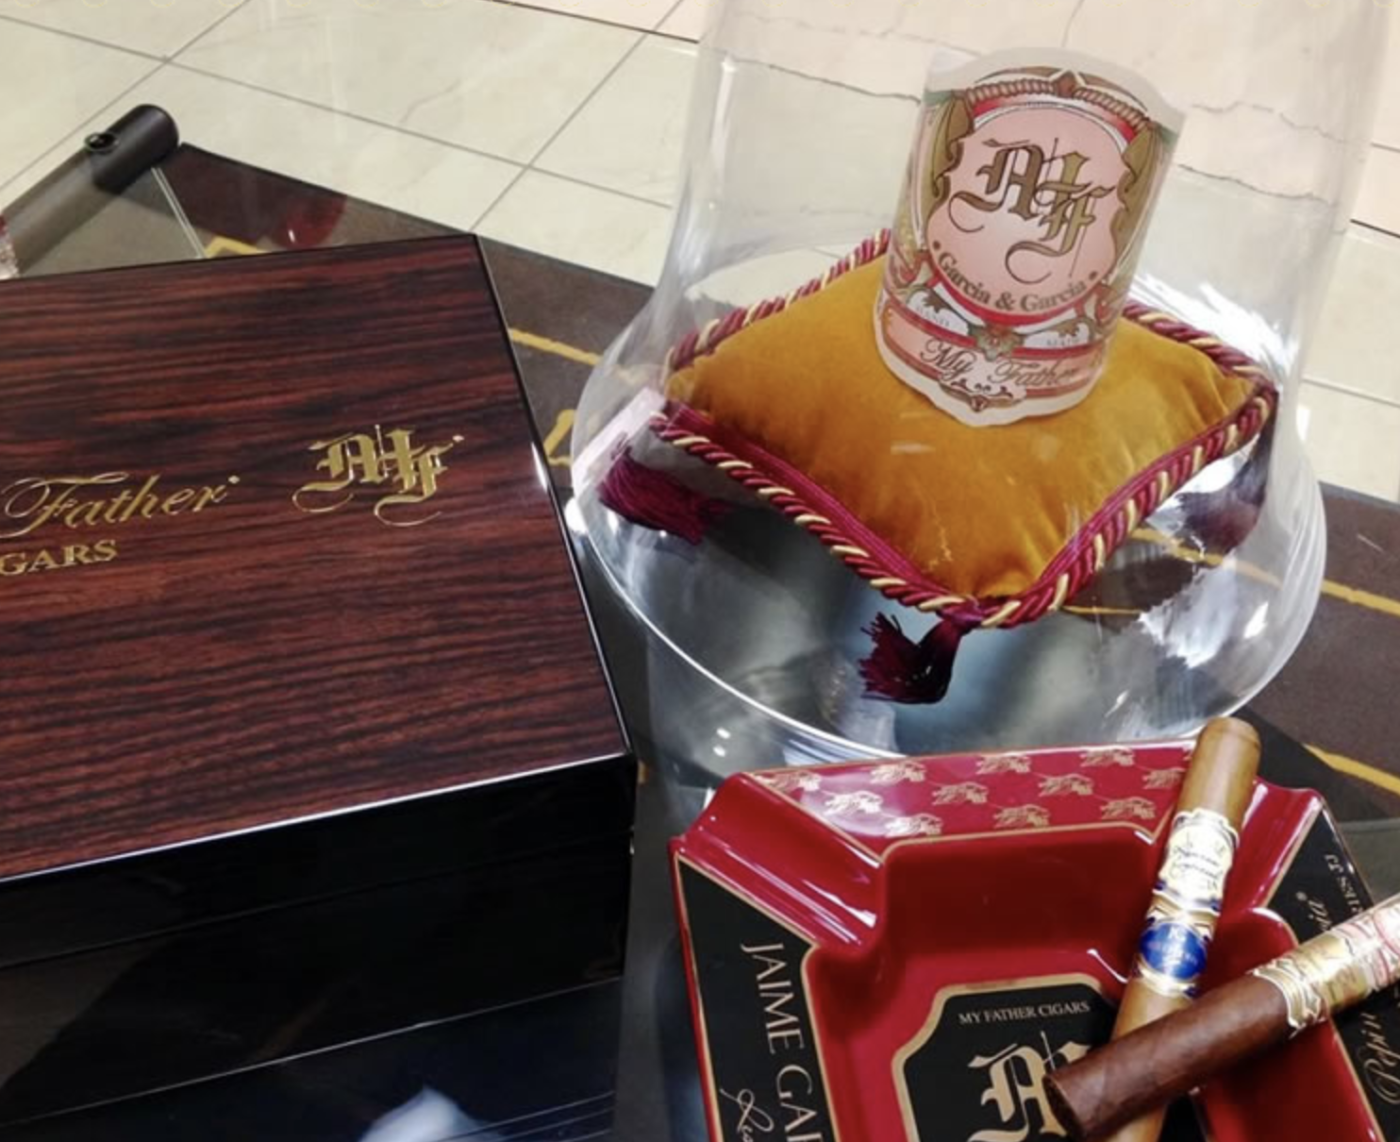 My Father Cigars Event – September 12th